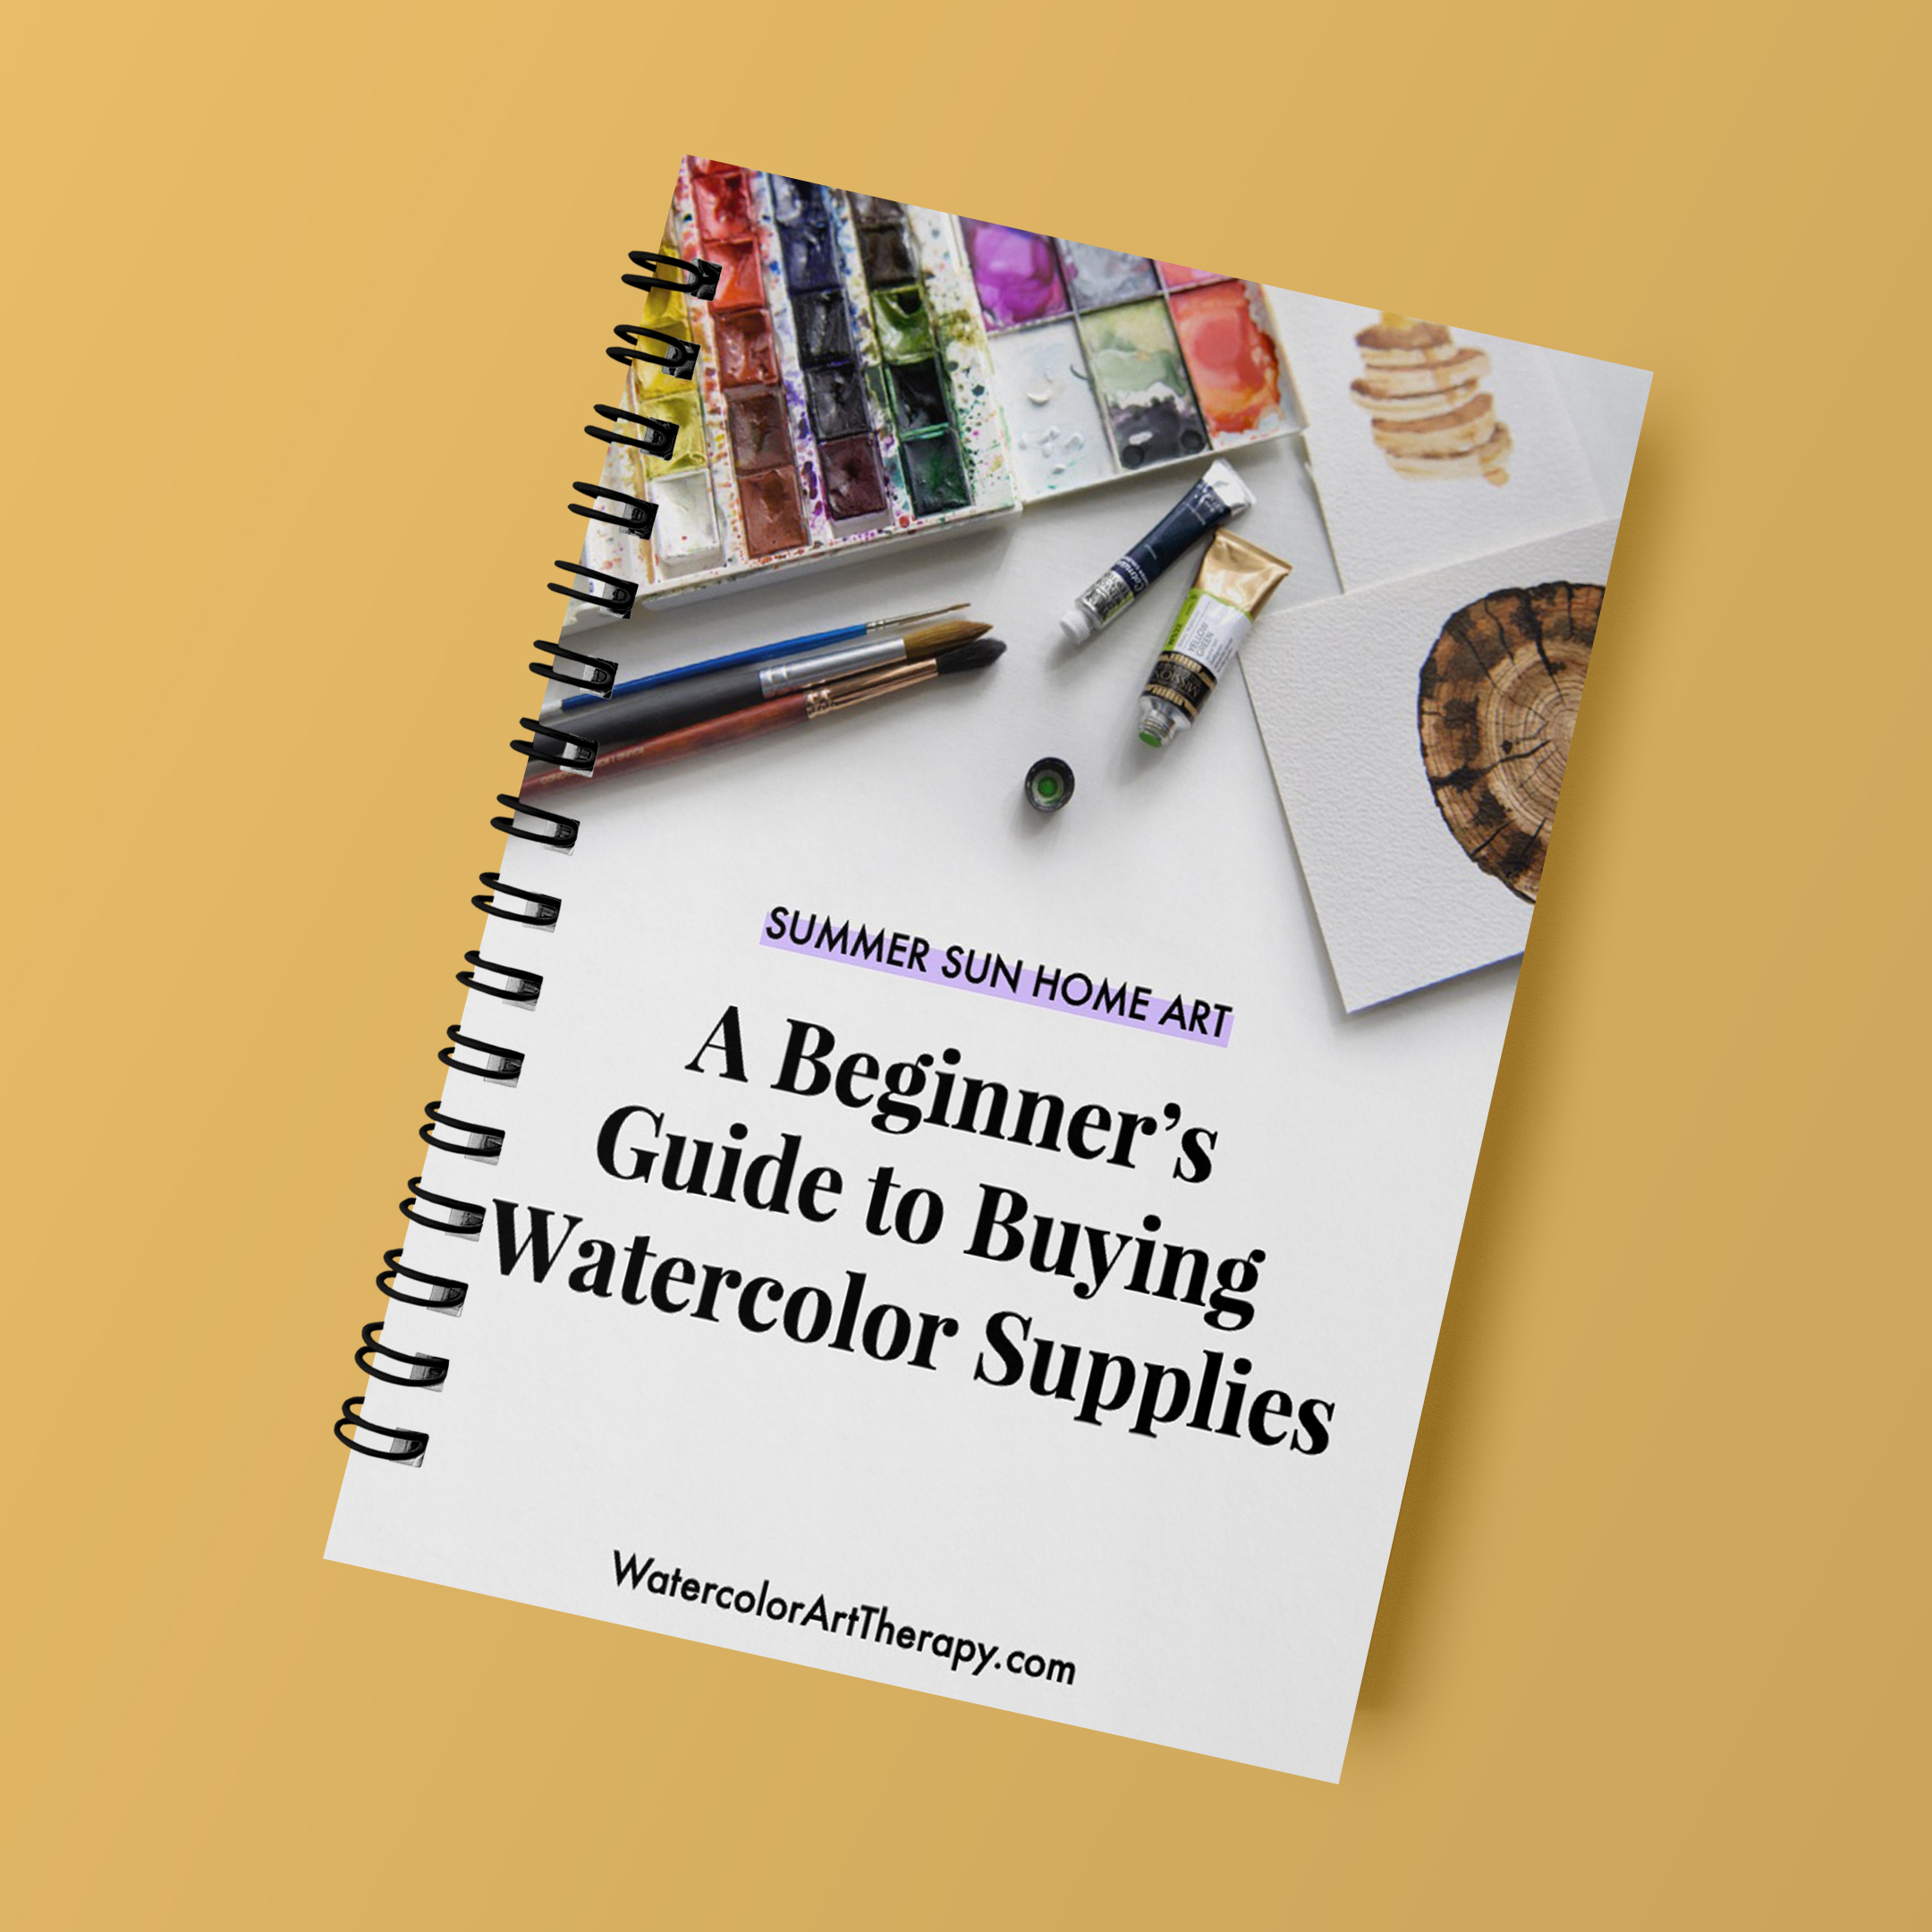 HOW TO FIND PERFECT SUPPLIES - A Free Guide for Beginners